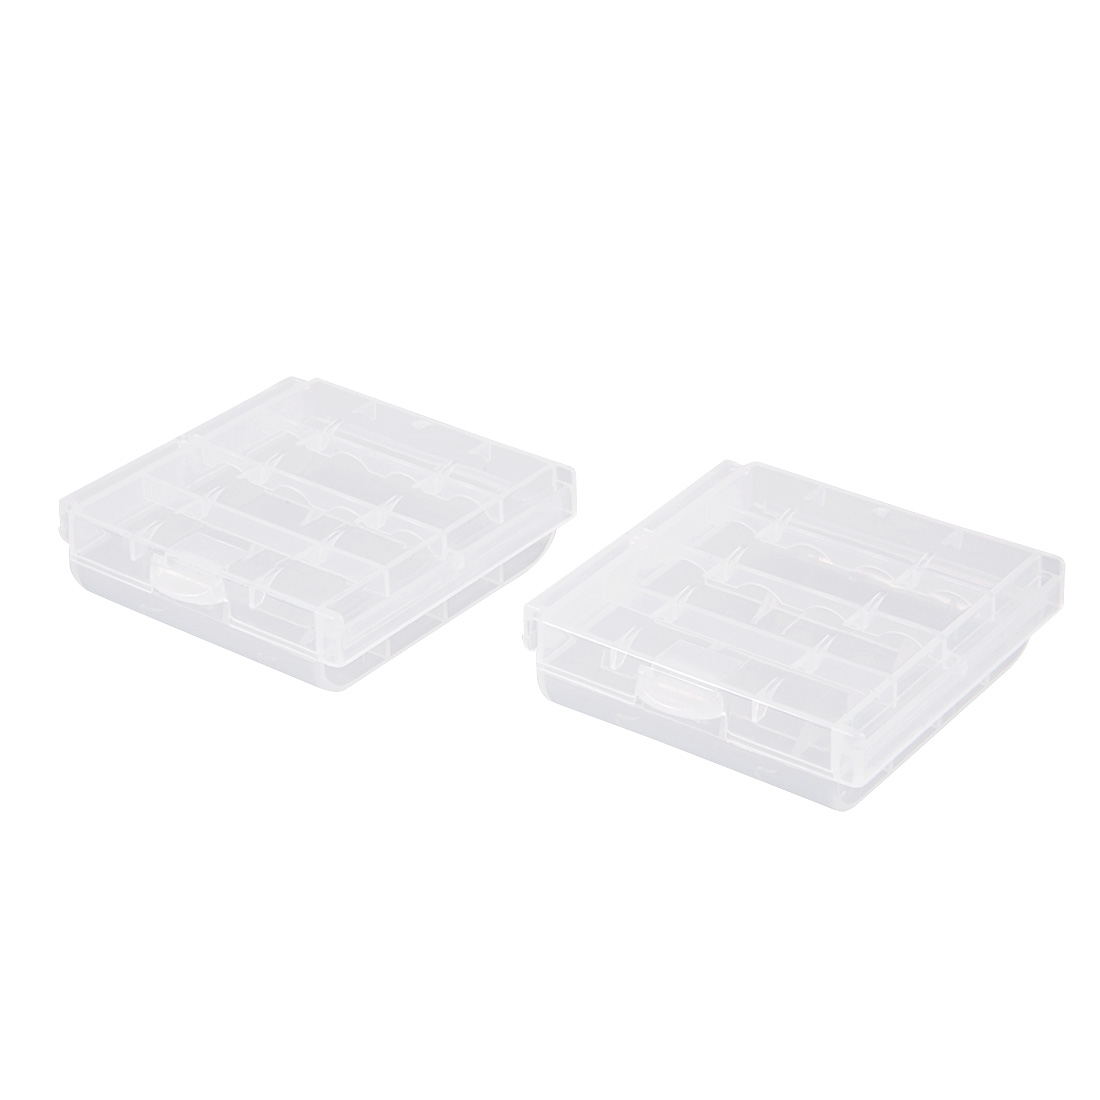 2 Pcs Battery Storage Cases Holder Transparent 4AA or 4AAA Battery Capacity